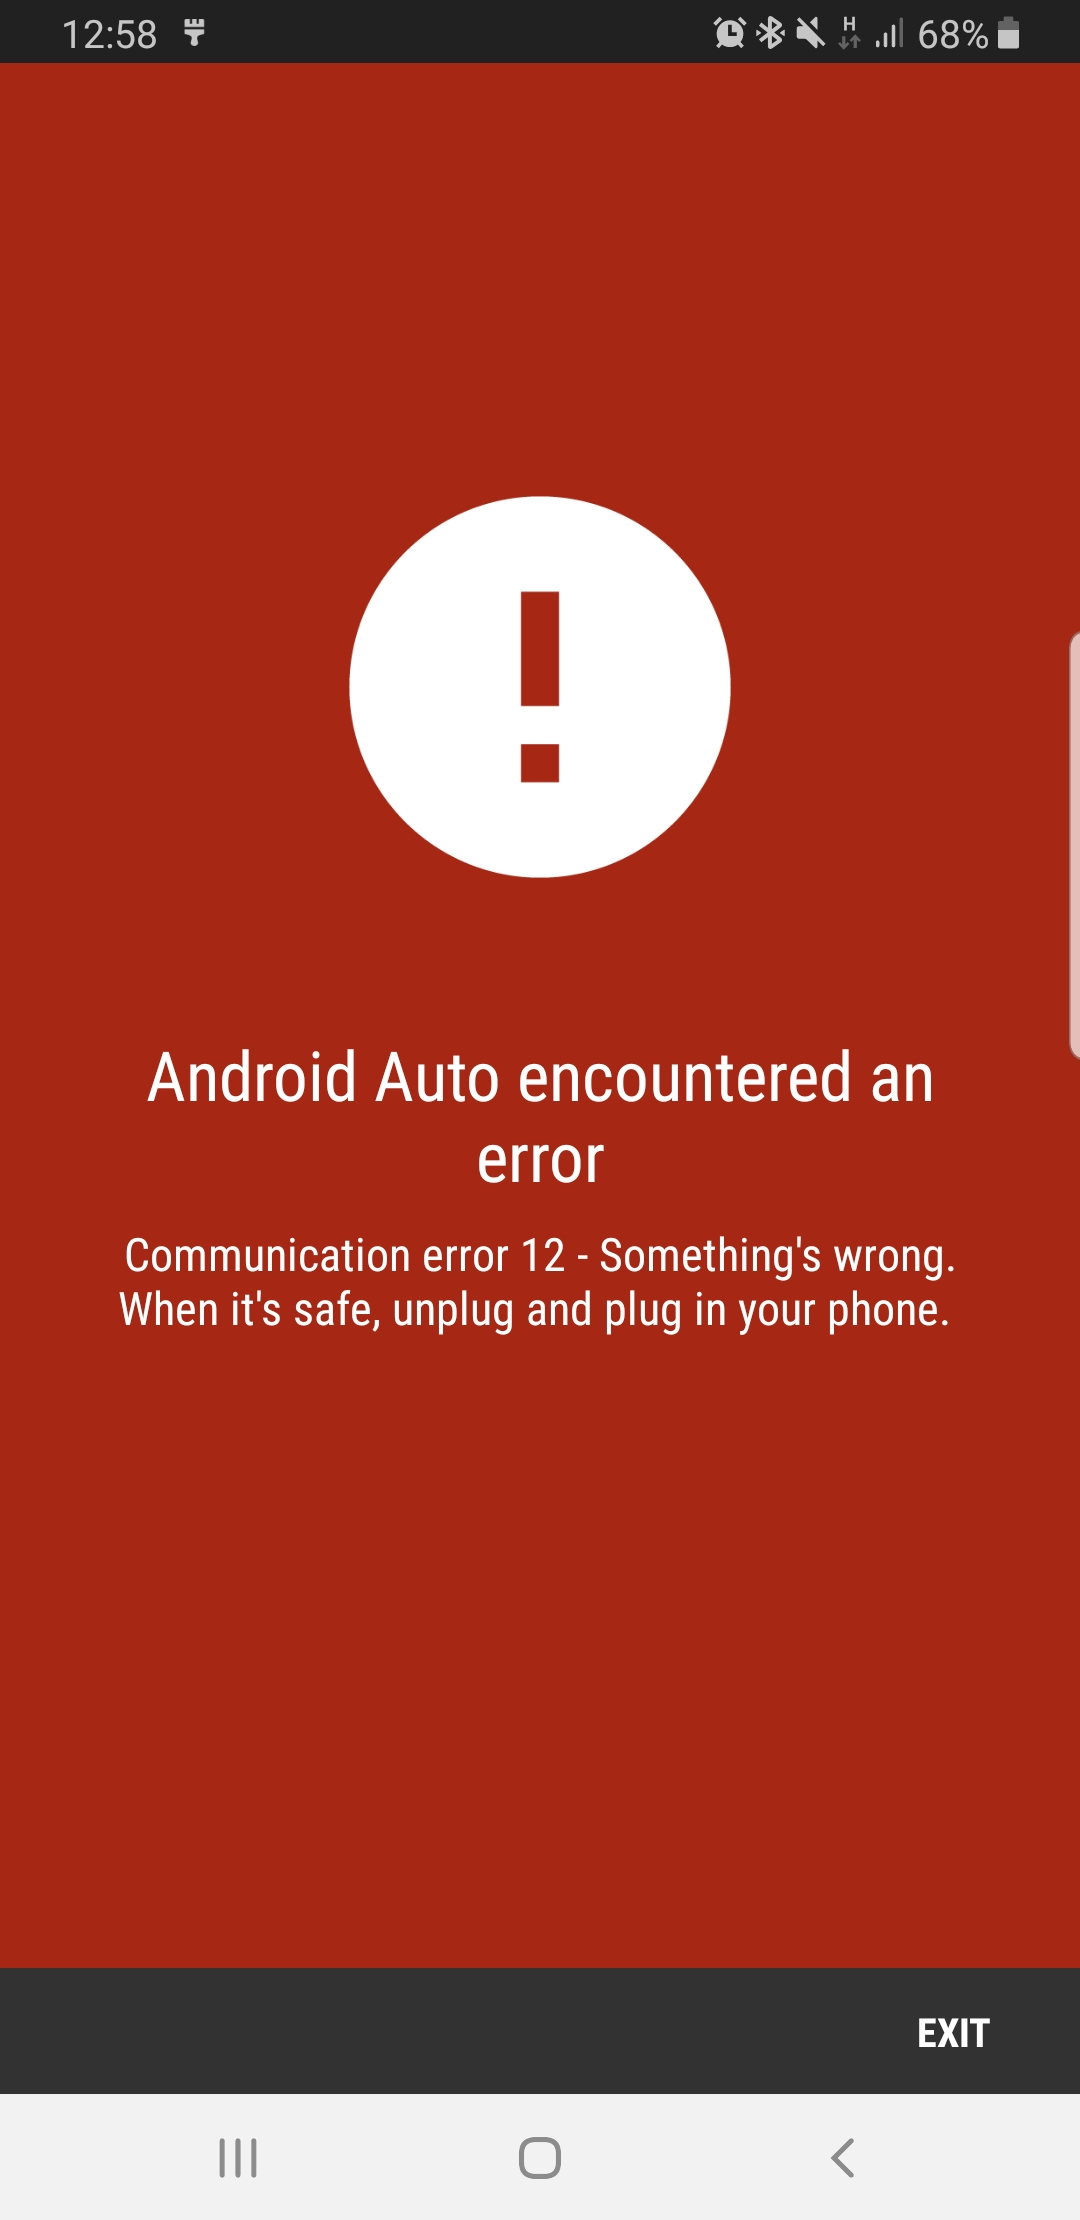 What's convection error 12 - Android Auto Help